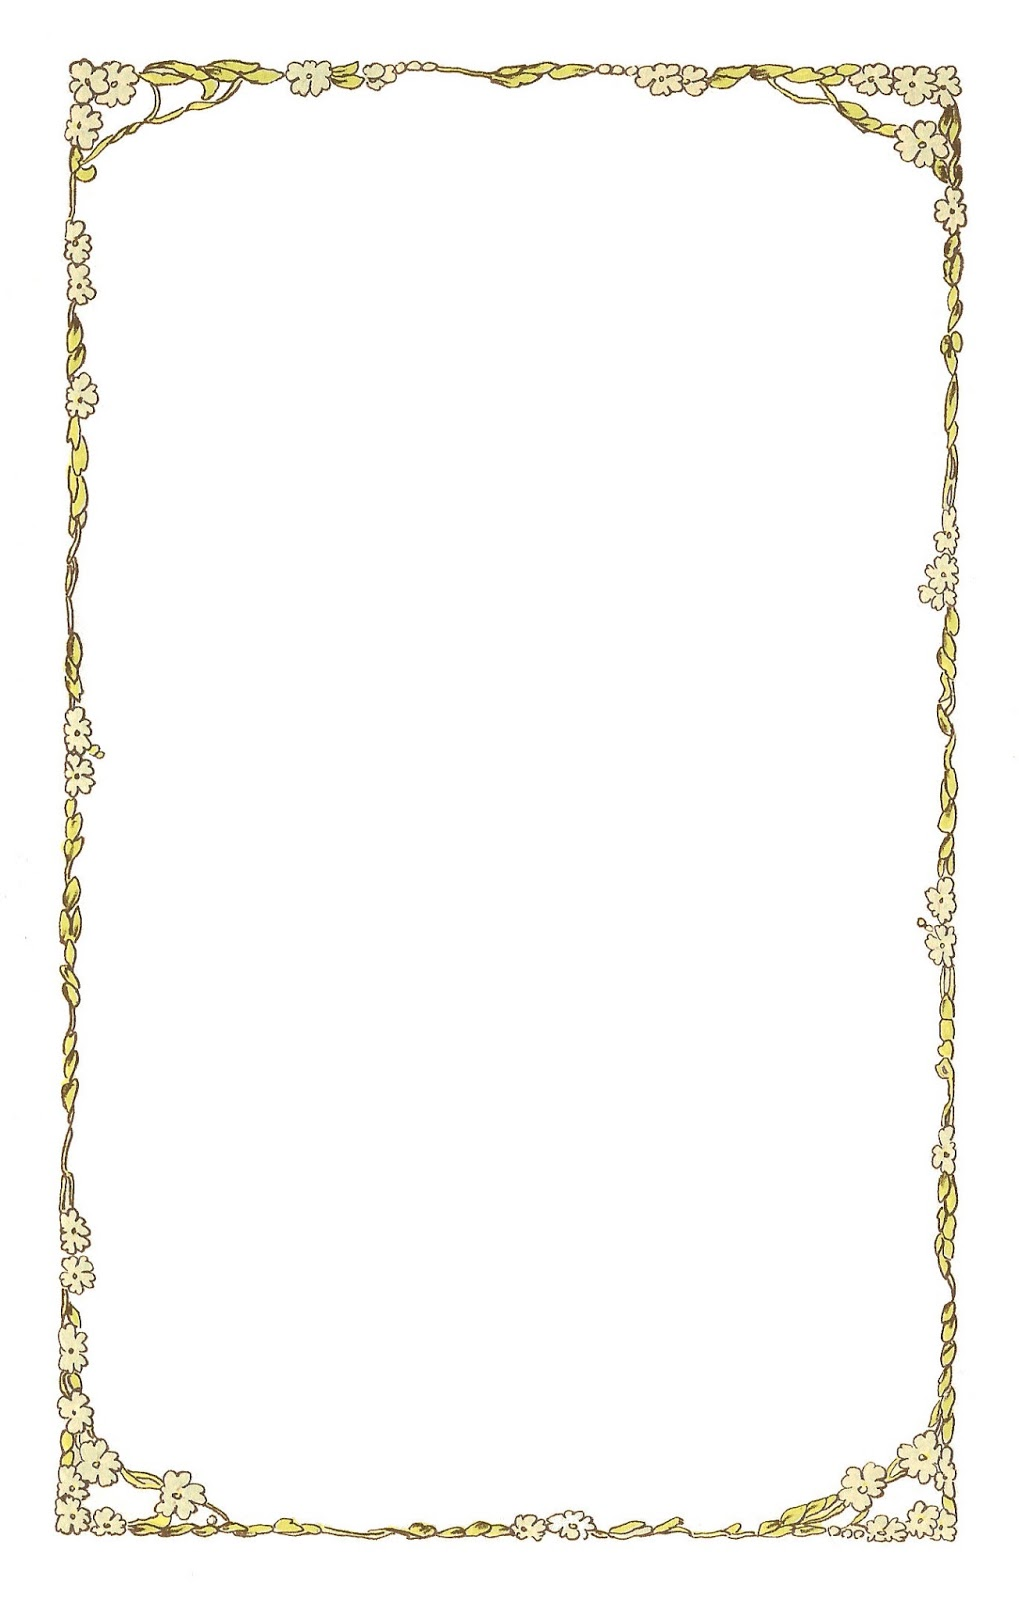 Frame welcome border clipart clipart kid.